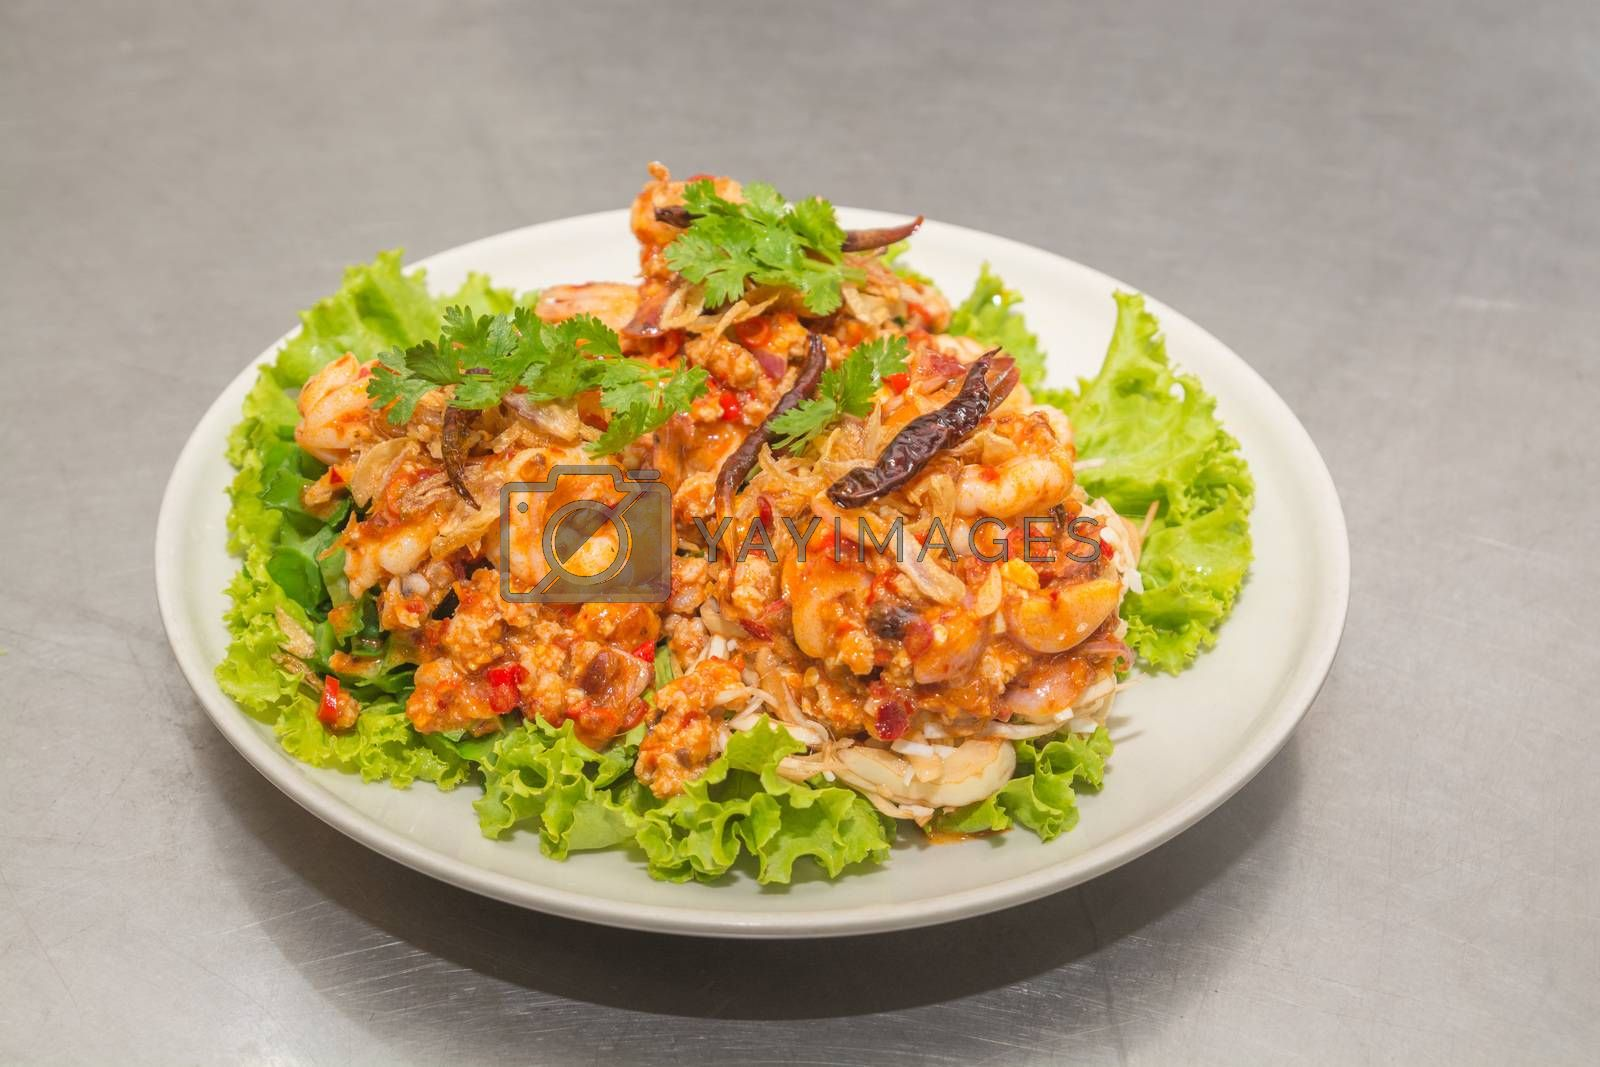 Spicy Seafood Salad, Mix of Squid, Shrimp and Shellfish with Spring Onion, Lettuce, Red Chili and Parsley, Thai food or Cuisine